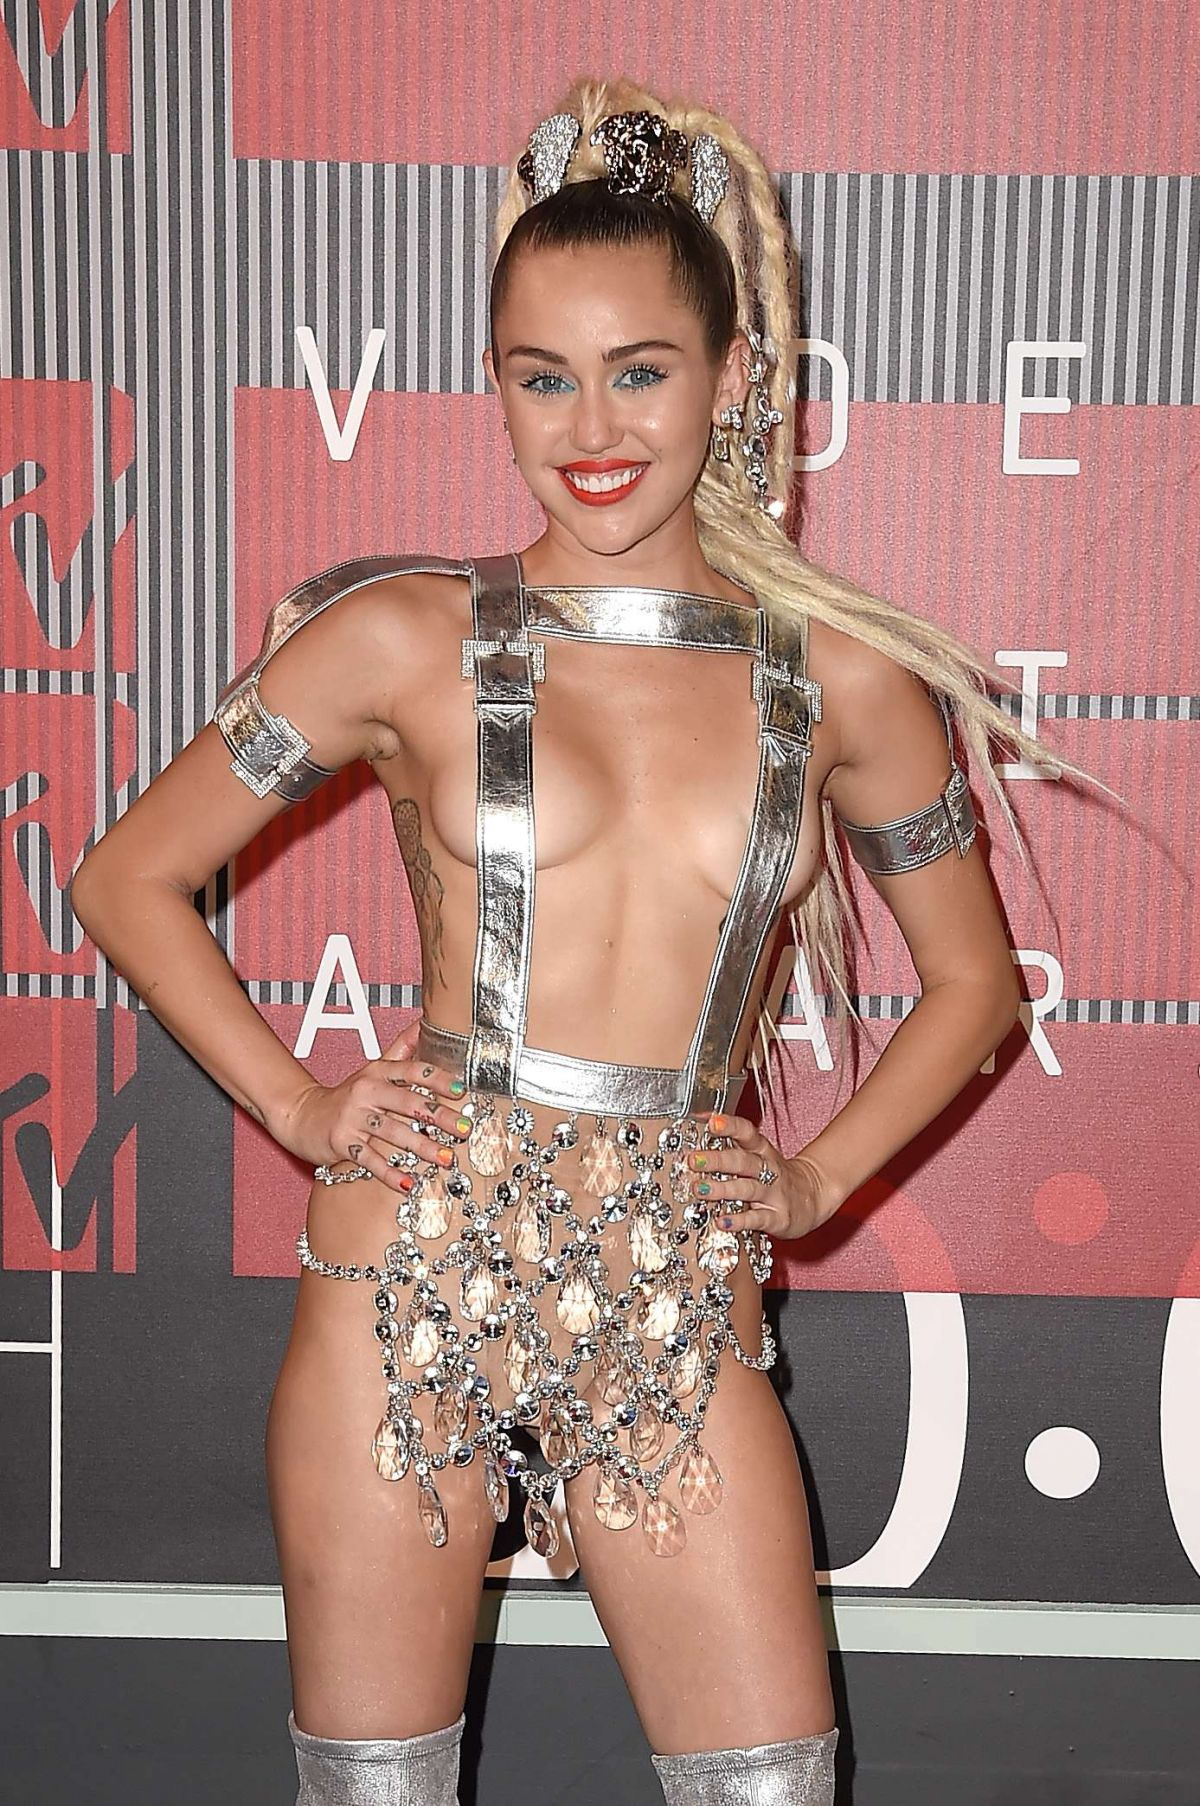 Not Miley cyris nakt hot charming idea